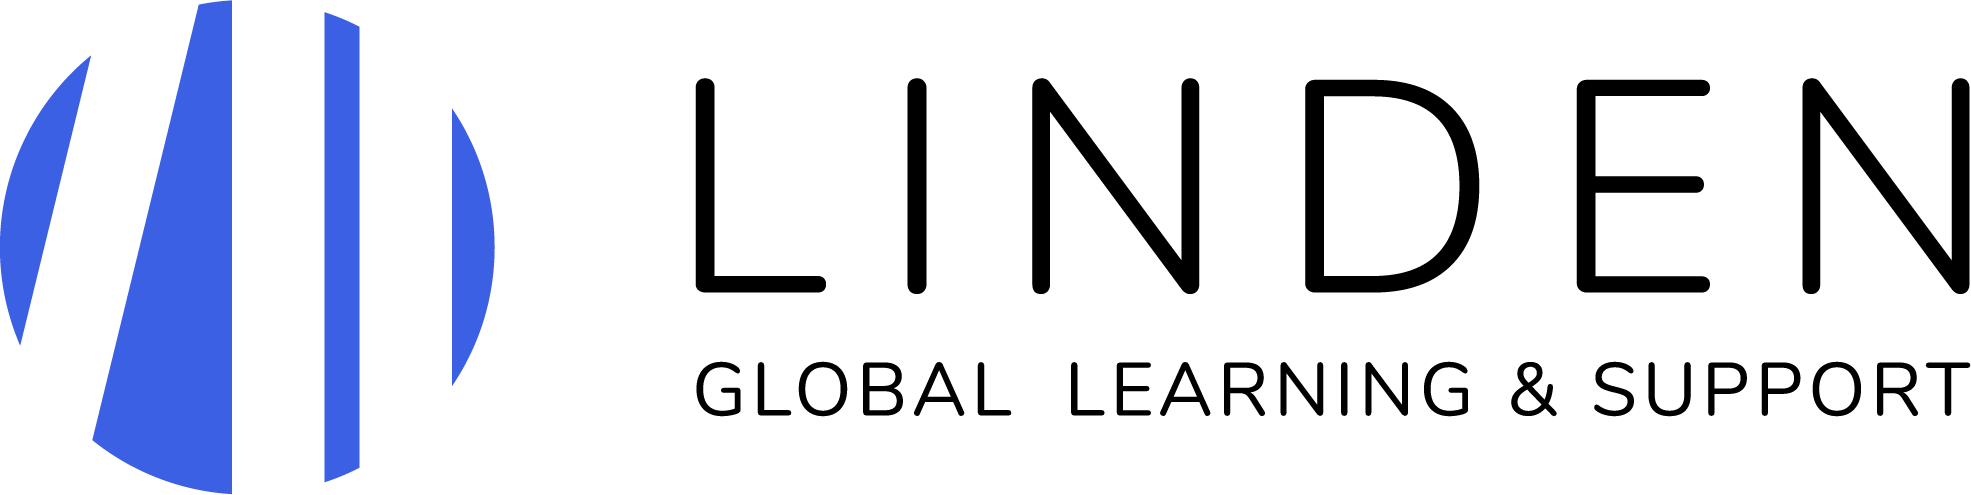 Linden Global Learning Support Services UG Logo